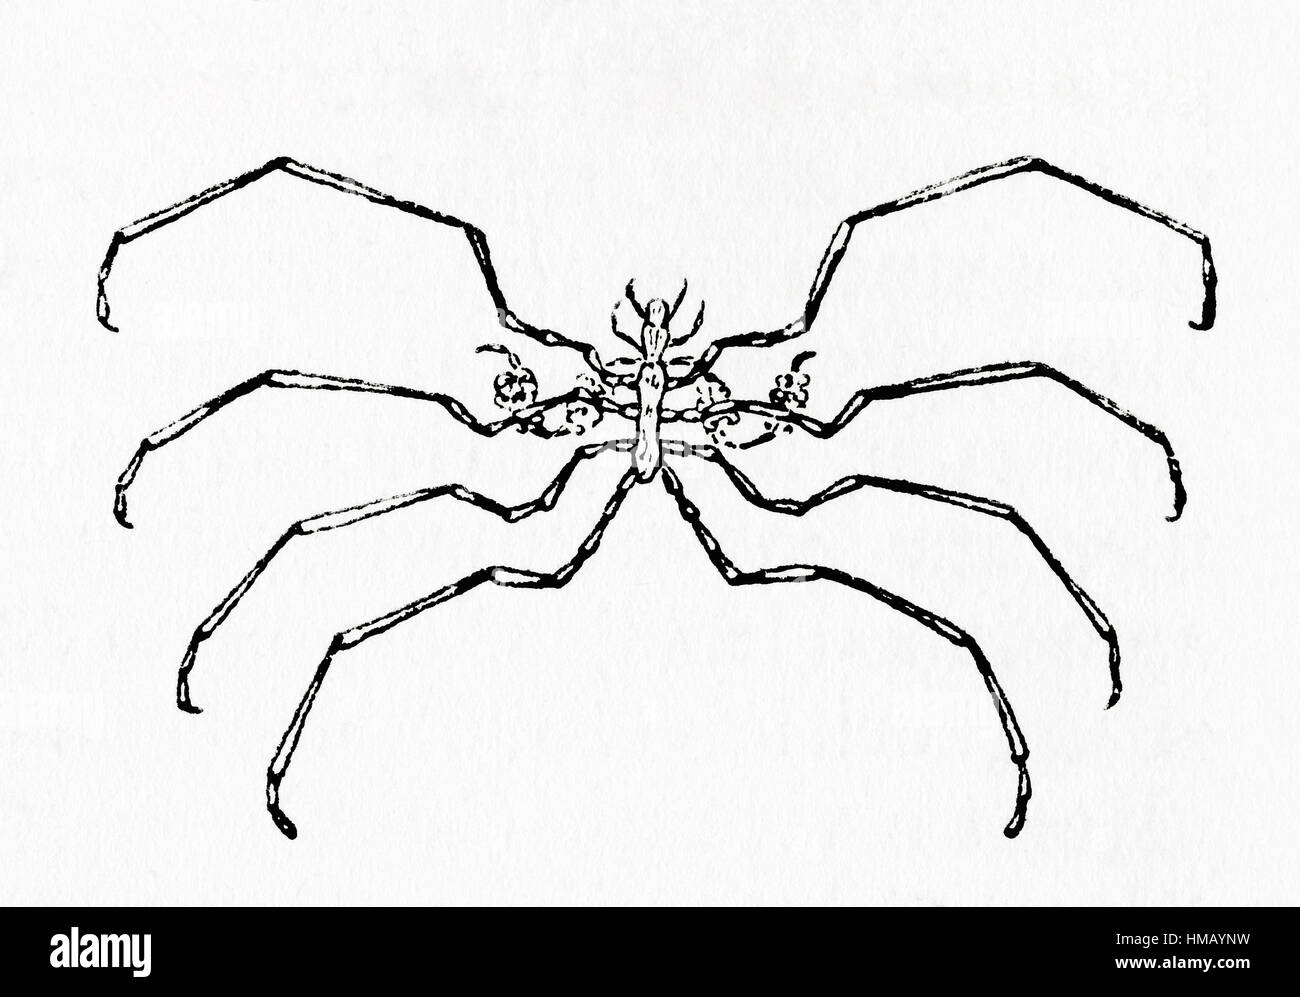 A Sea spider aka Pantopoda or pycnogonids.  Marine arthropods of class Pycnogonida.  From Meyers Lexicon, published - Stock Image